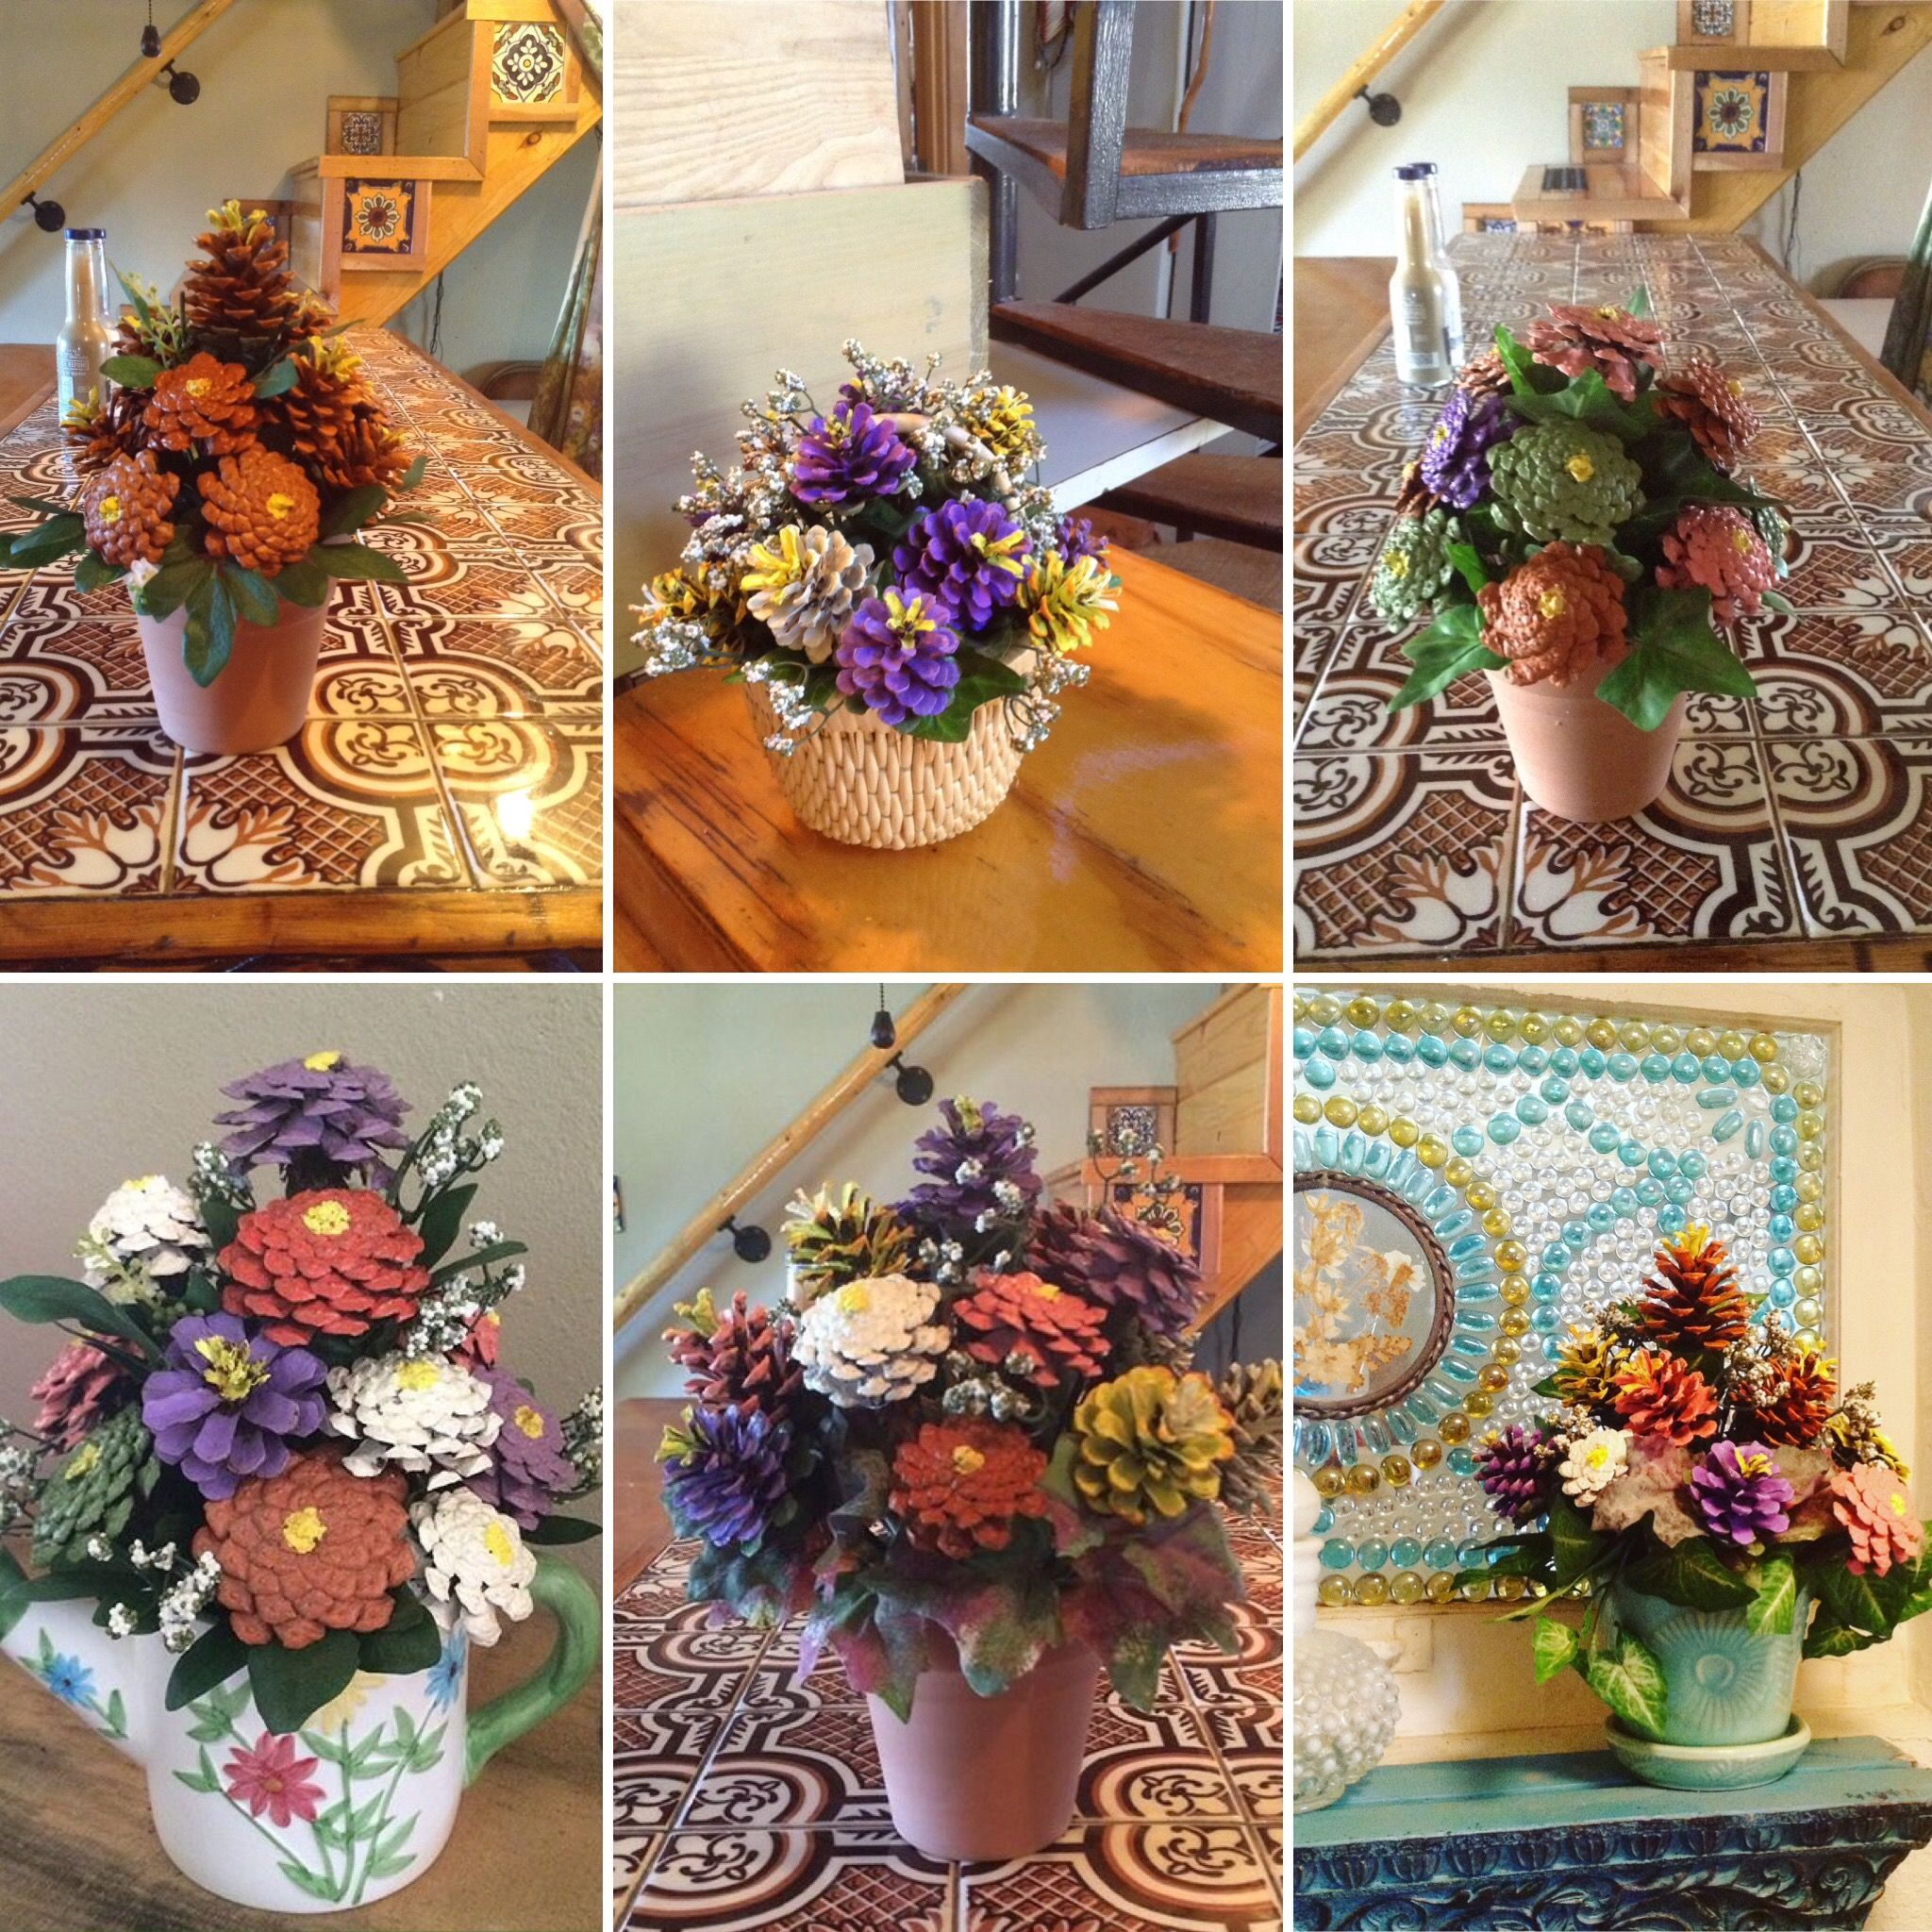 Pinecone Flower Arrangements By Cathy Nyman Pine Cone Flower Wreath Pine Cone Crafts Pine Cone Decorations